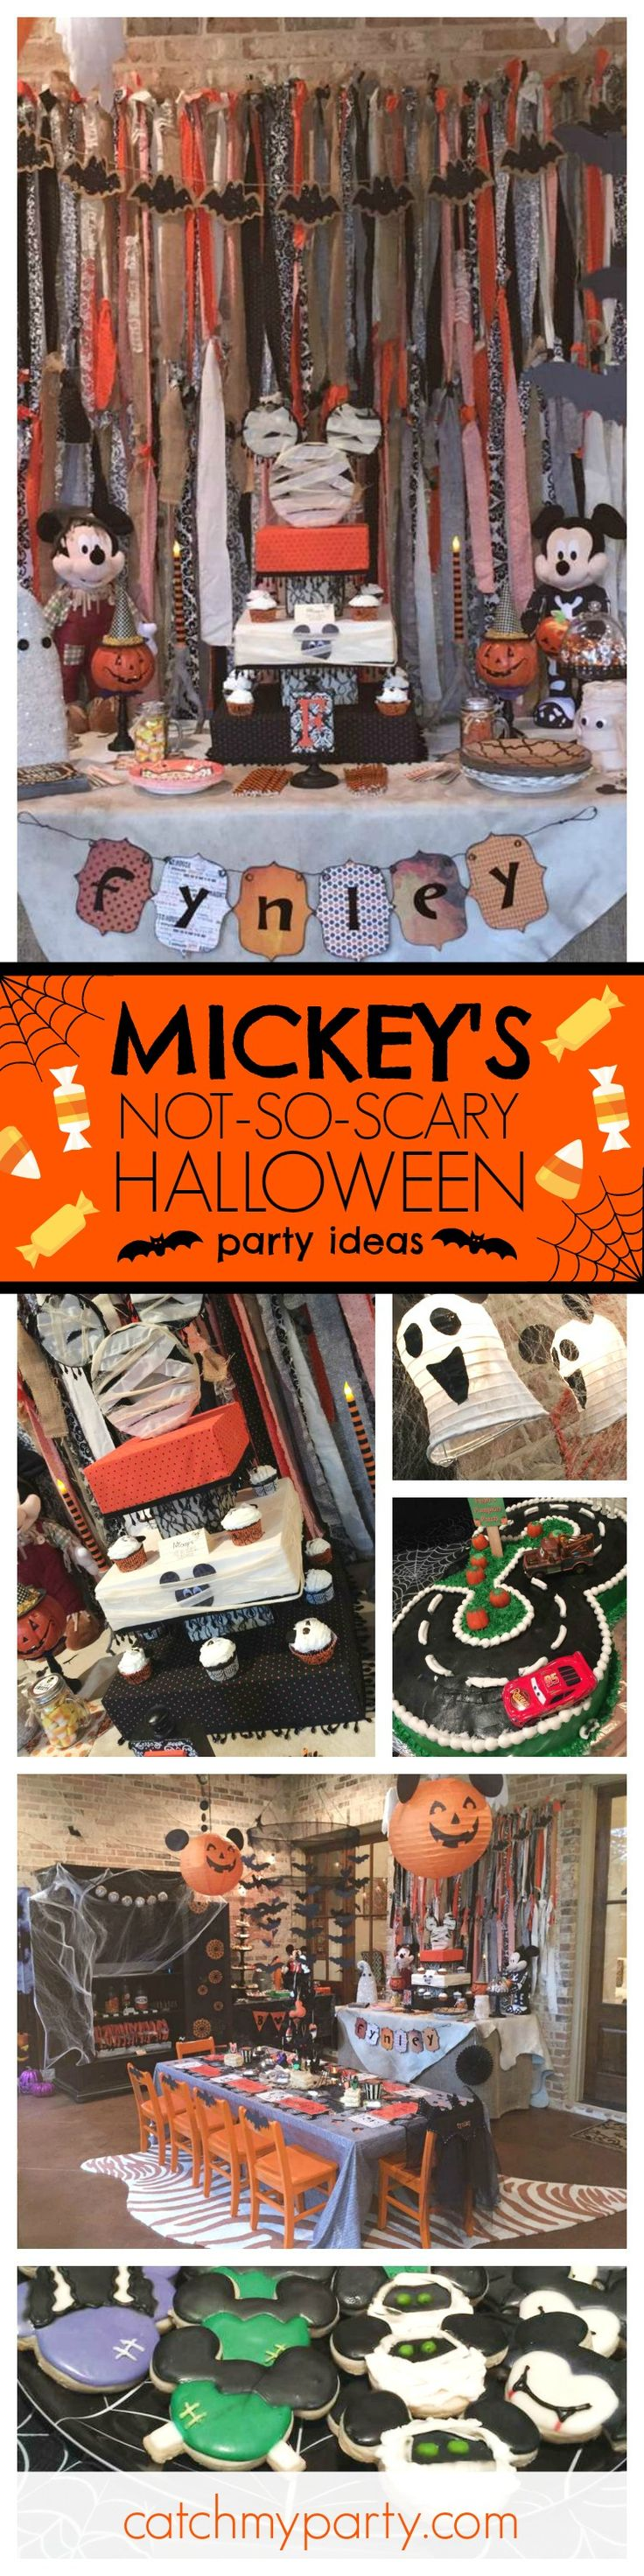 Don't miss this great Mickey's Not-So-Scary Halloween Birthday Party! The decorations and table settings are awesome!